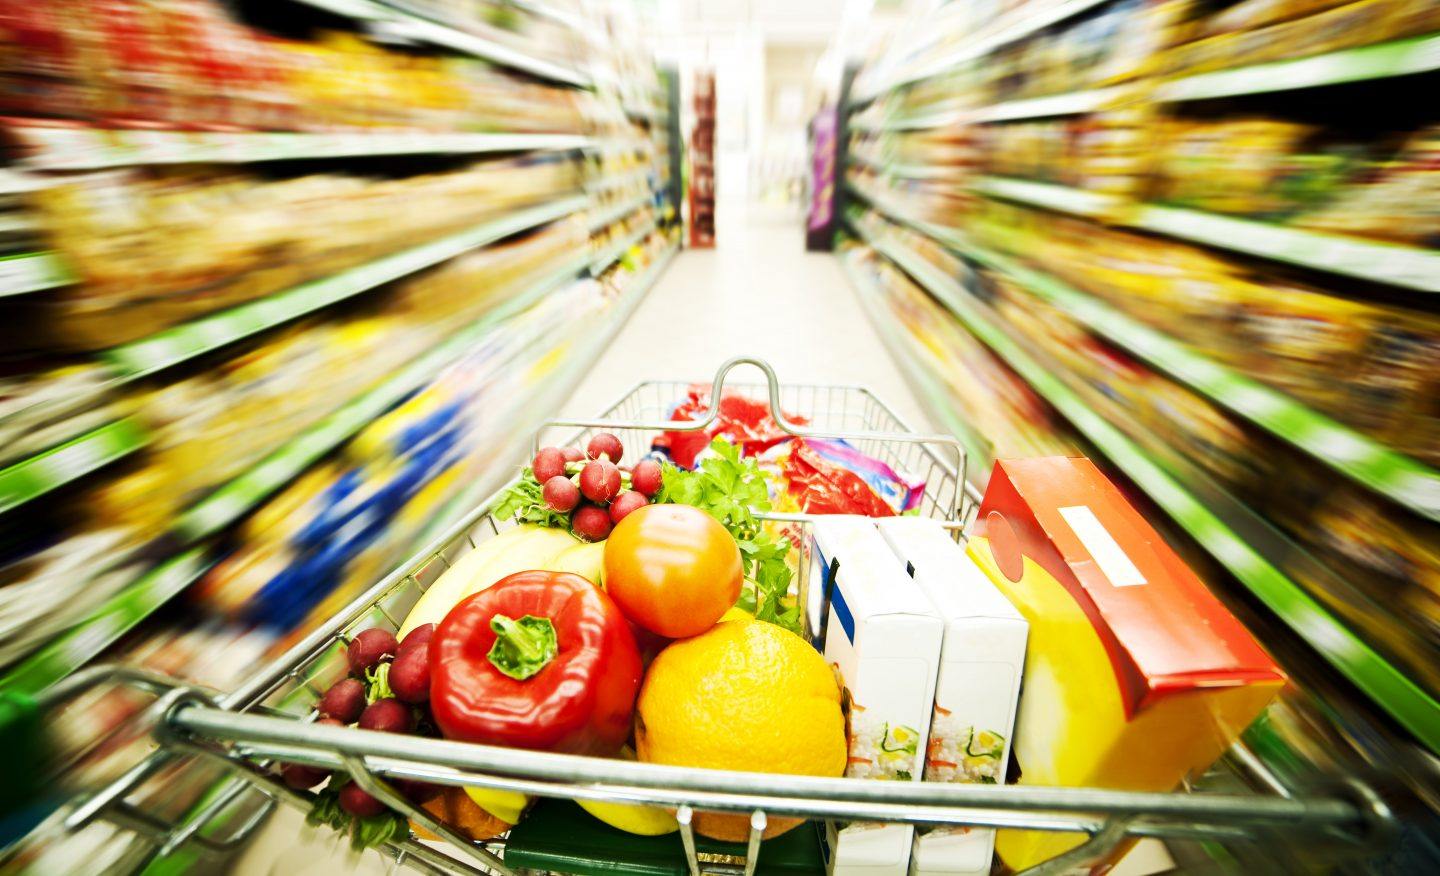 Supermarket trolley with vegetables,grocery shopping, adidas, GamePlan A, nutrition, health, paleo, diet